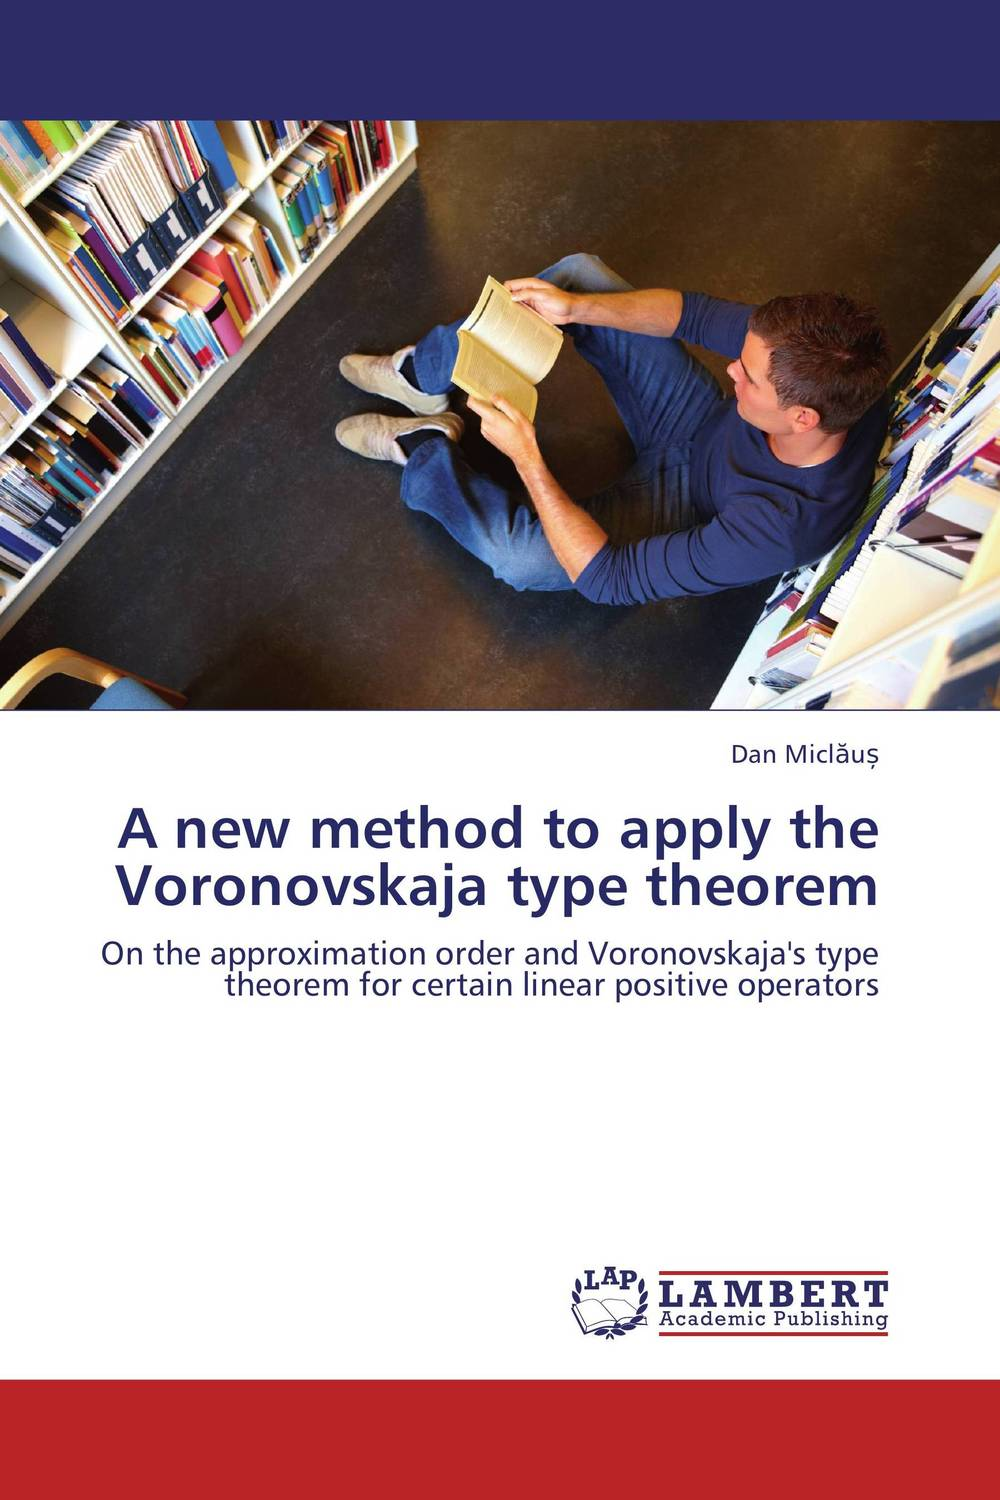 A new method to apply the Voronovskaja type theorem